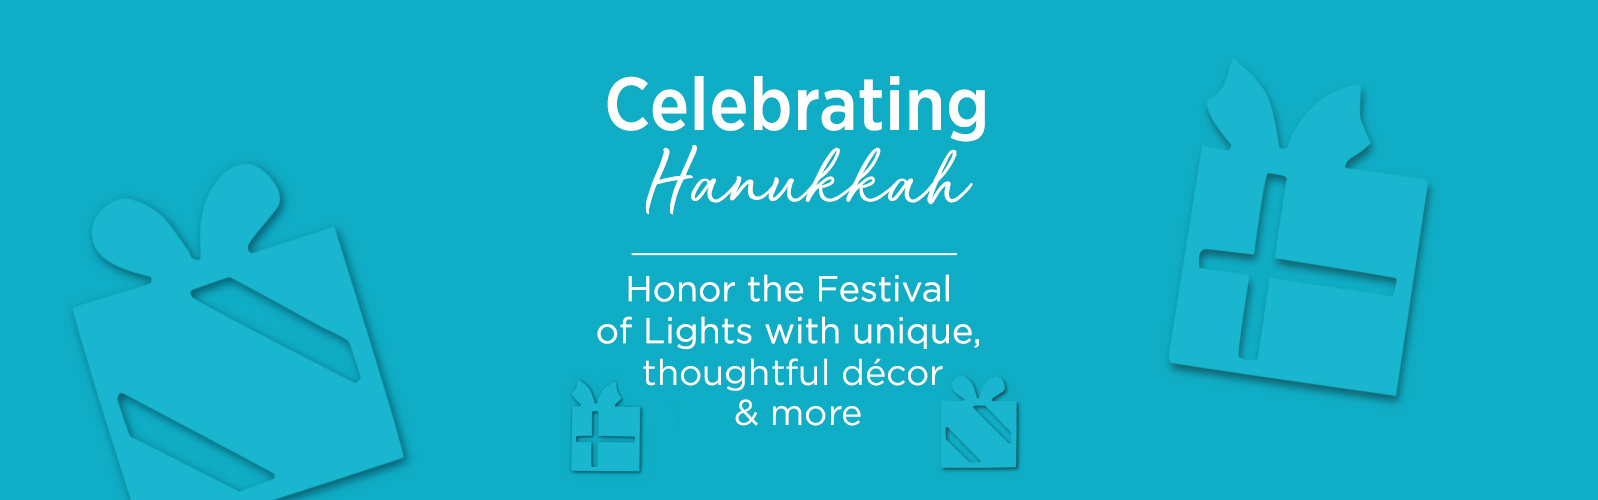 Celebrating Hanukkah.  Honor the Festival of Lights with unique, thoughtful décor & more